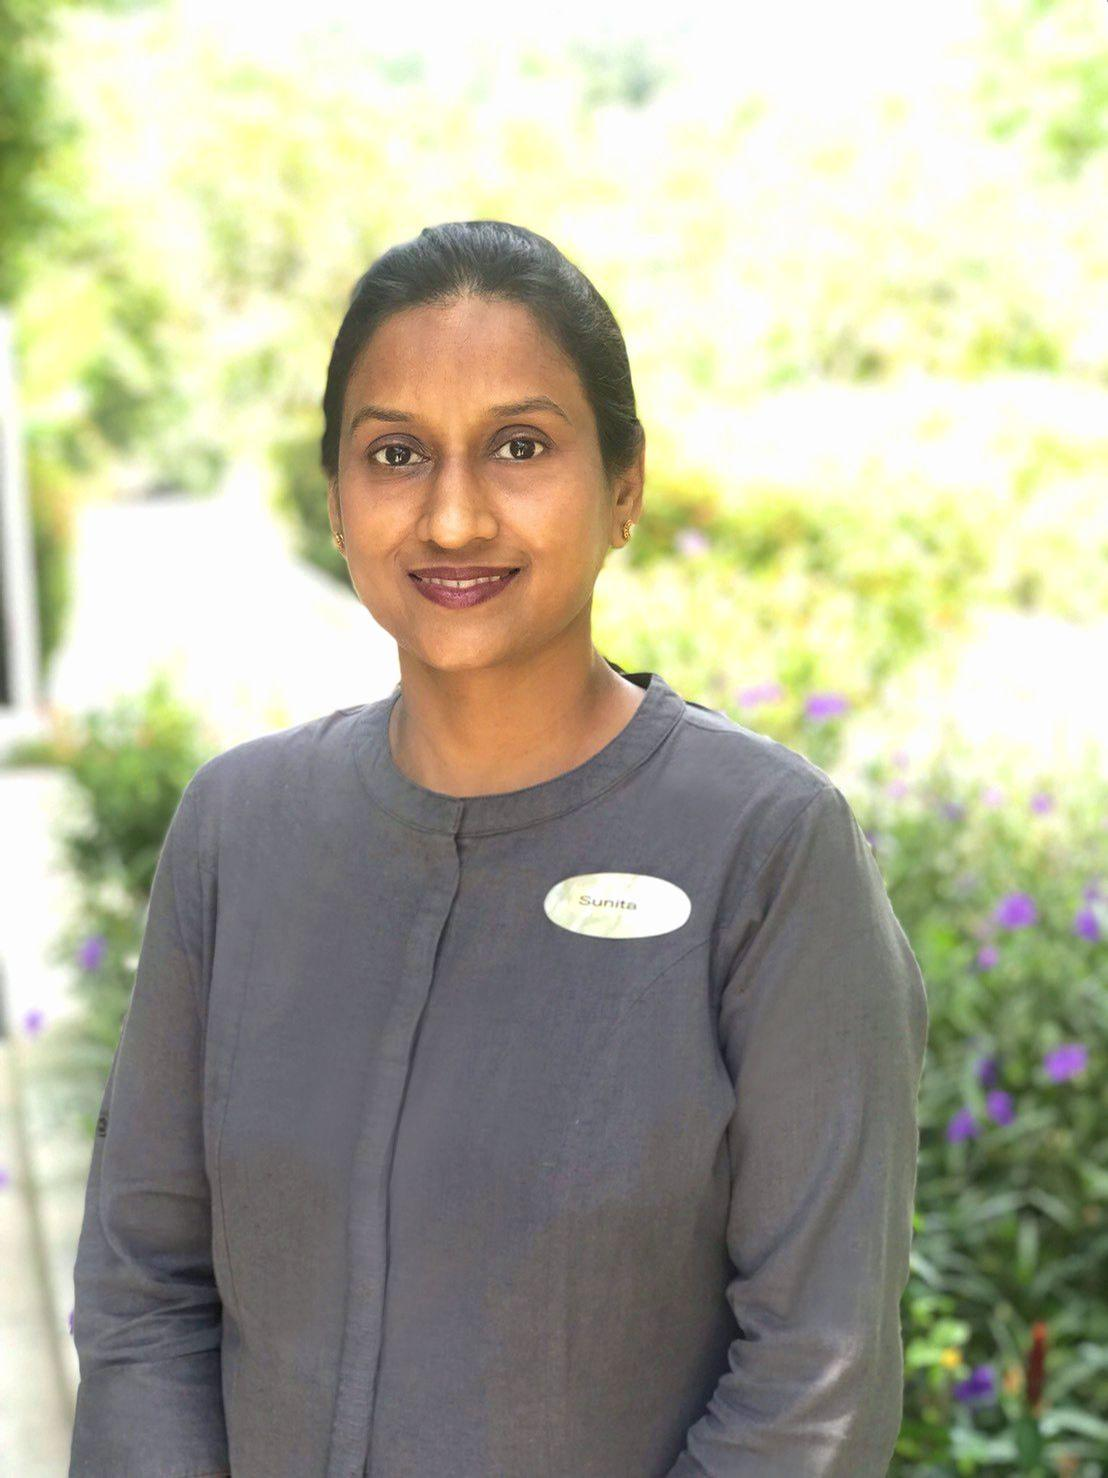 Dr Mahamuni possesses knowledge in holistic health training, wellness counselling, guided meditation and retreat management